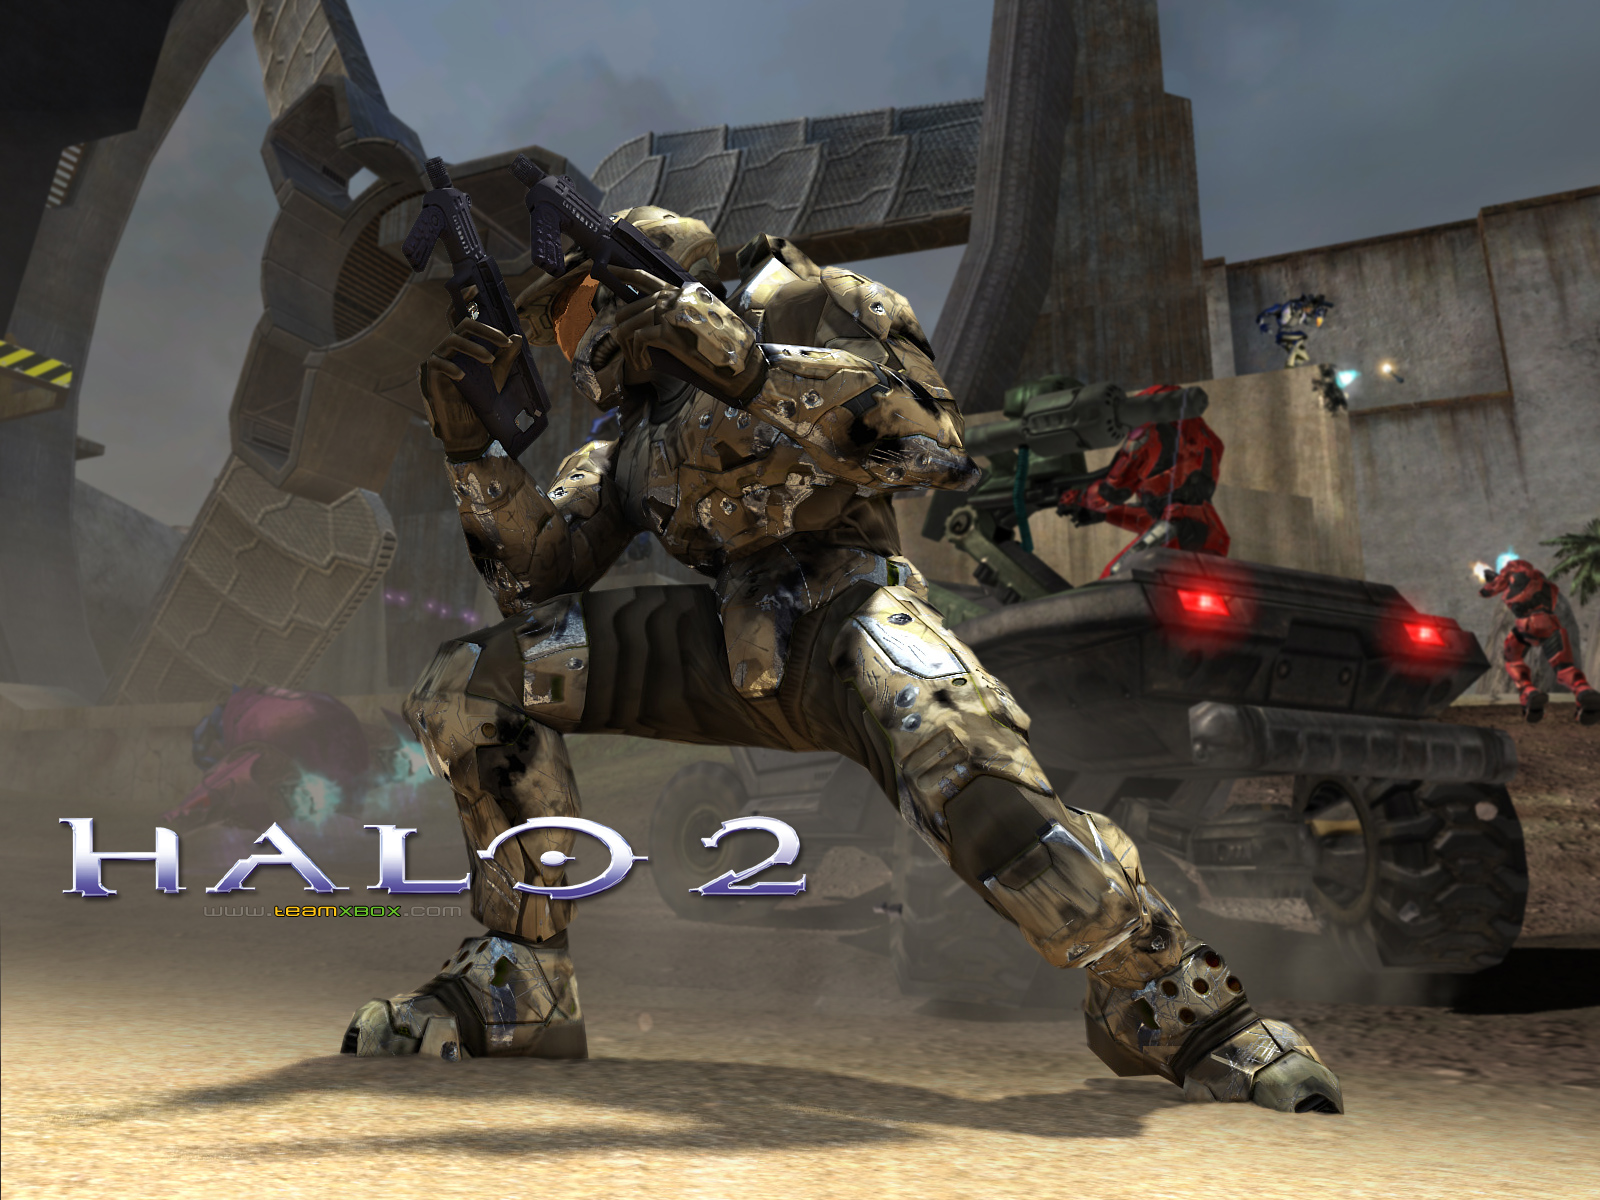 Halo Reach 3d Wallpaper Pc Wallpapers Hd Wallpapers De Halo 1 2 3 17 Fondos De